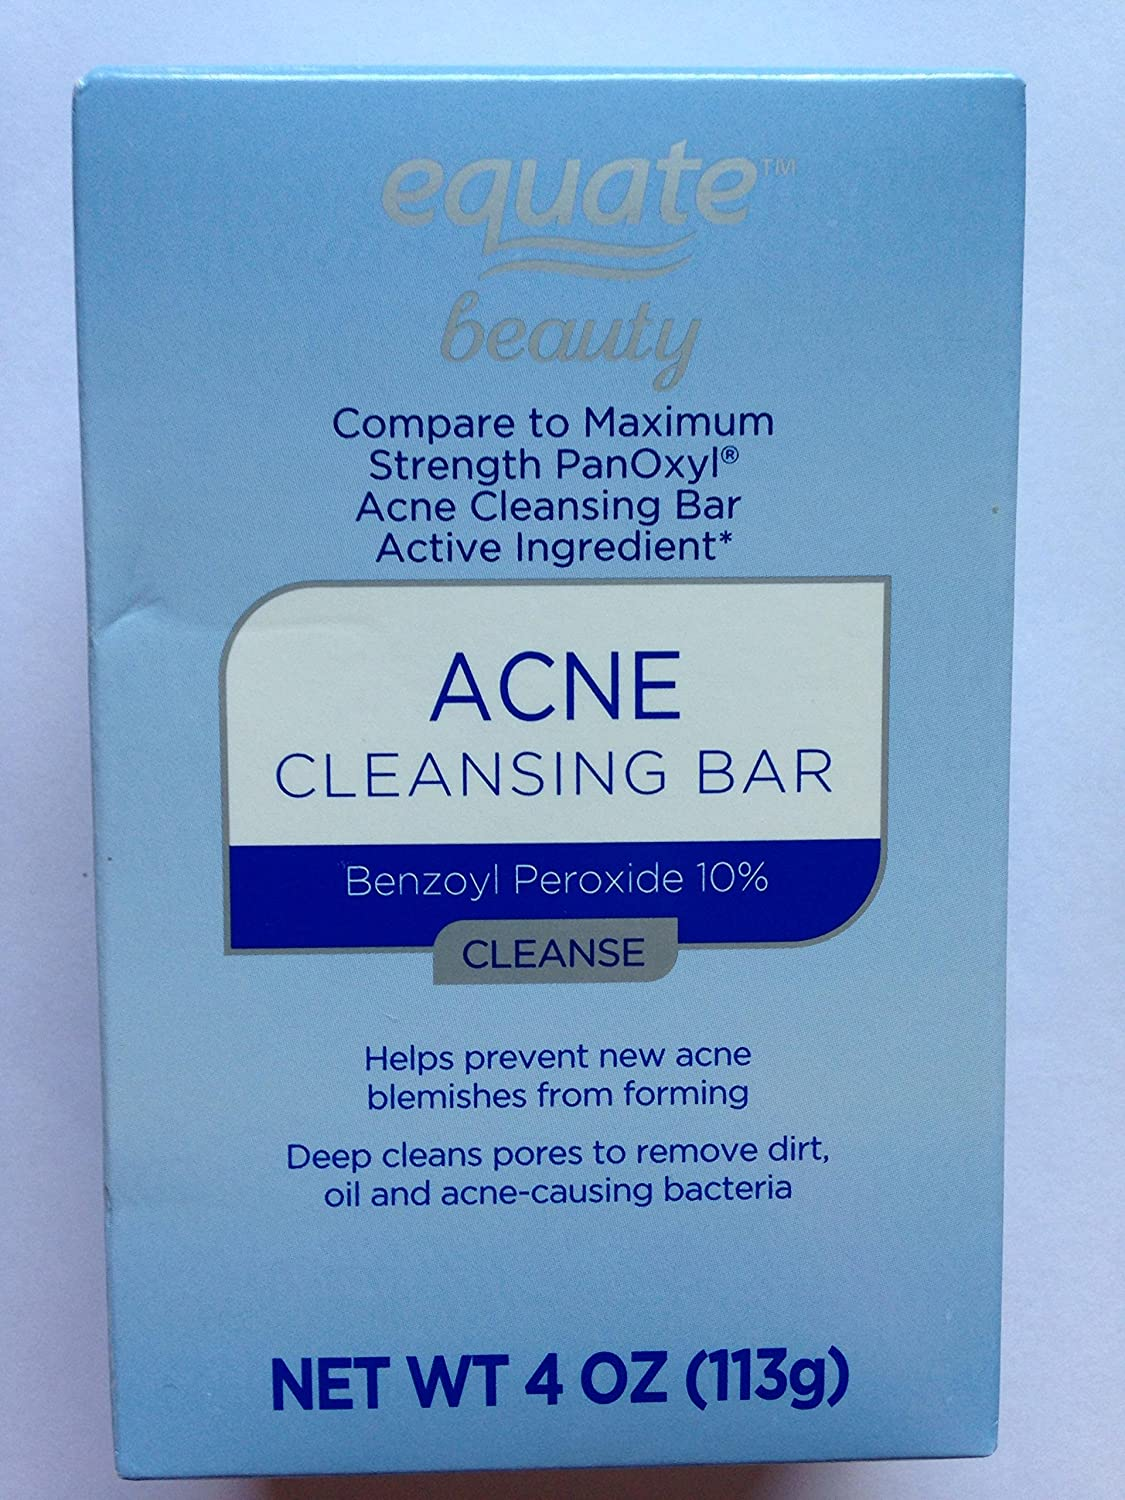 EQUATE ACNE CLEANSING BAR BENZOYL PEROXIDE 10% COMPARE TO PANOXYL